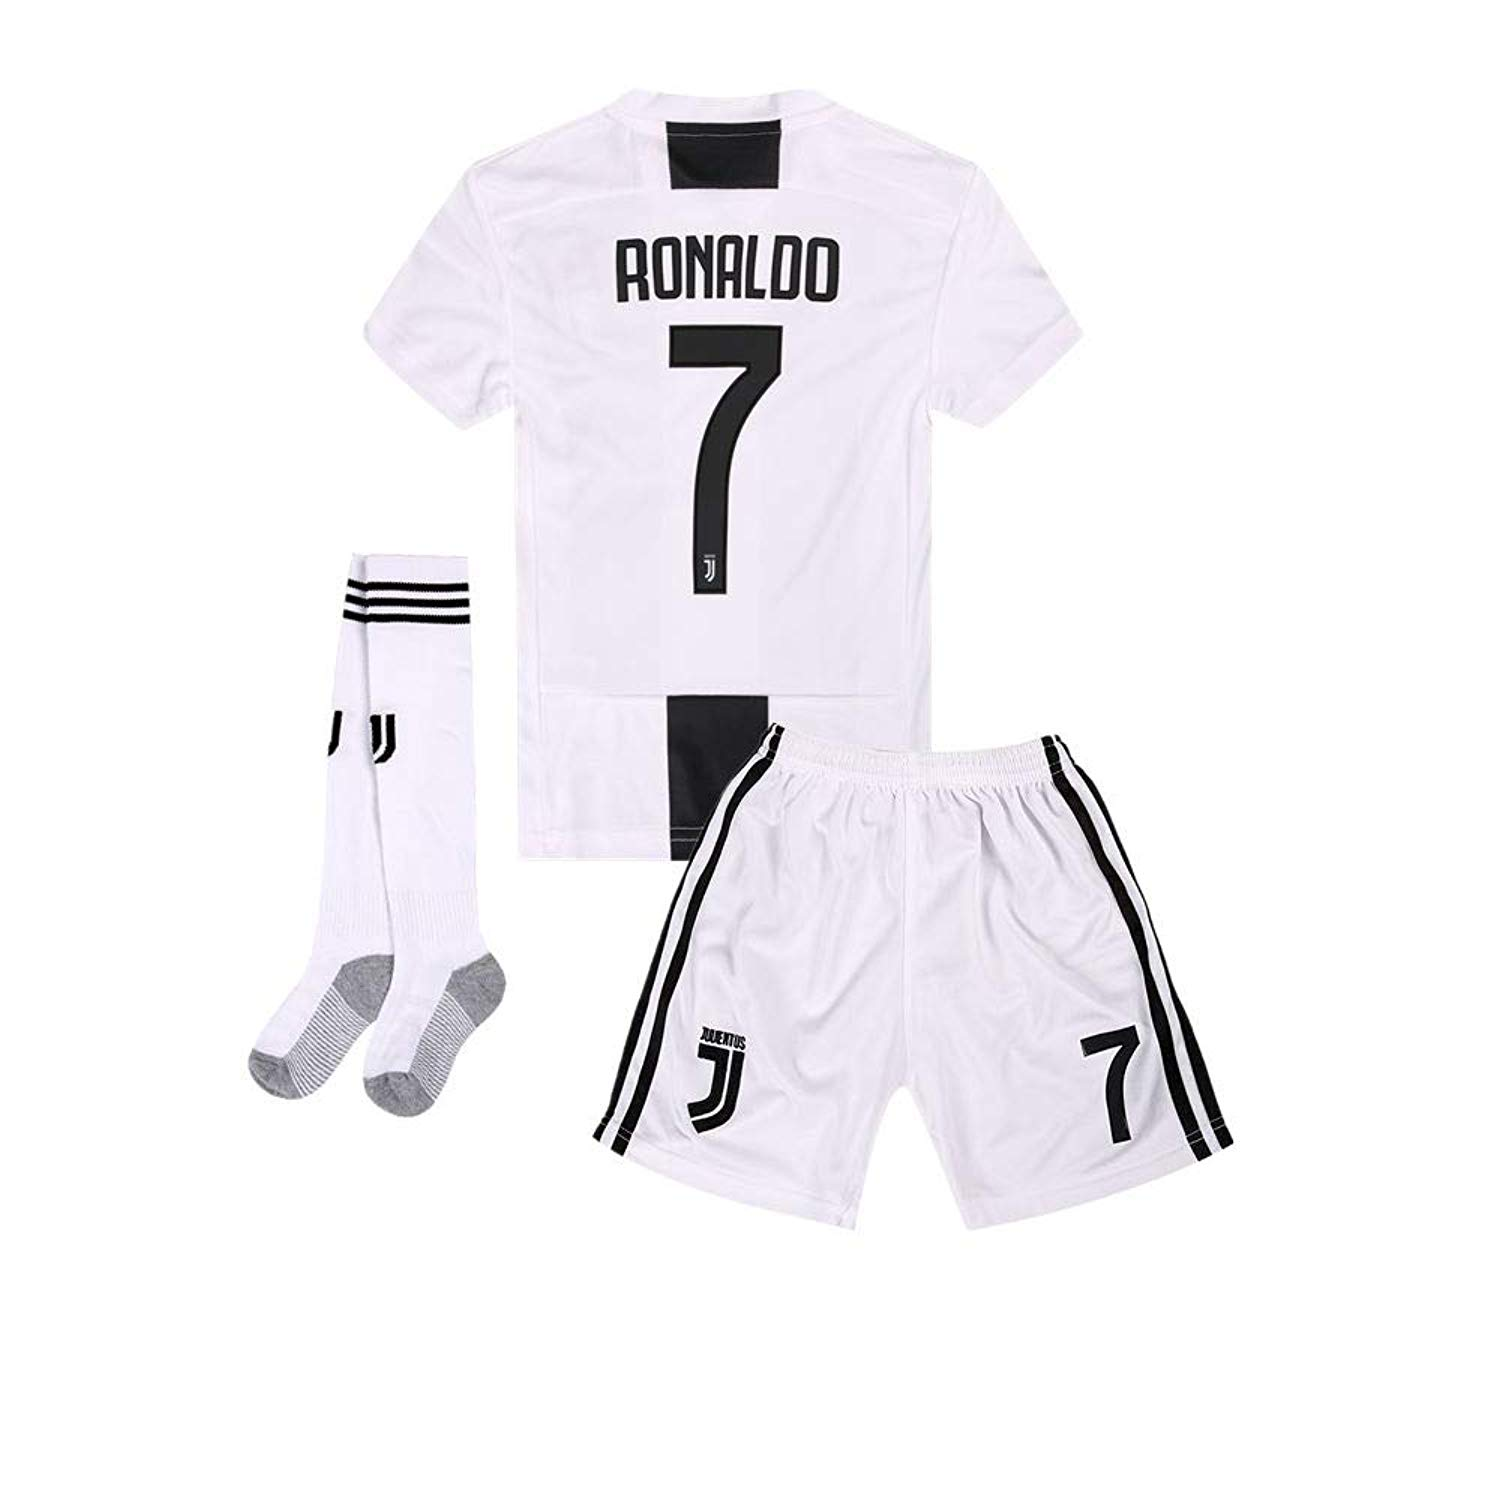 42f639008e5 Get Quotations · Yanfirstfc Juventus Home  7 Ronaldo 2018-2019 Kids Youth  White Soccer Jersey